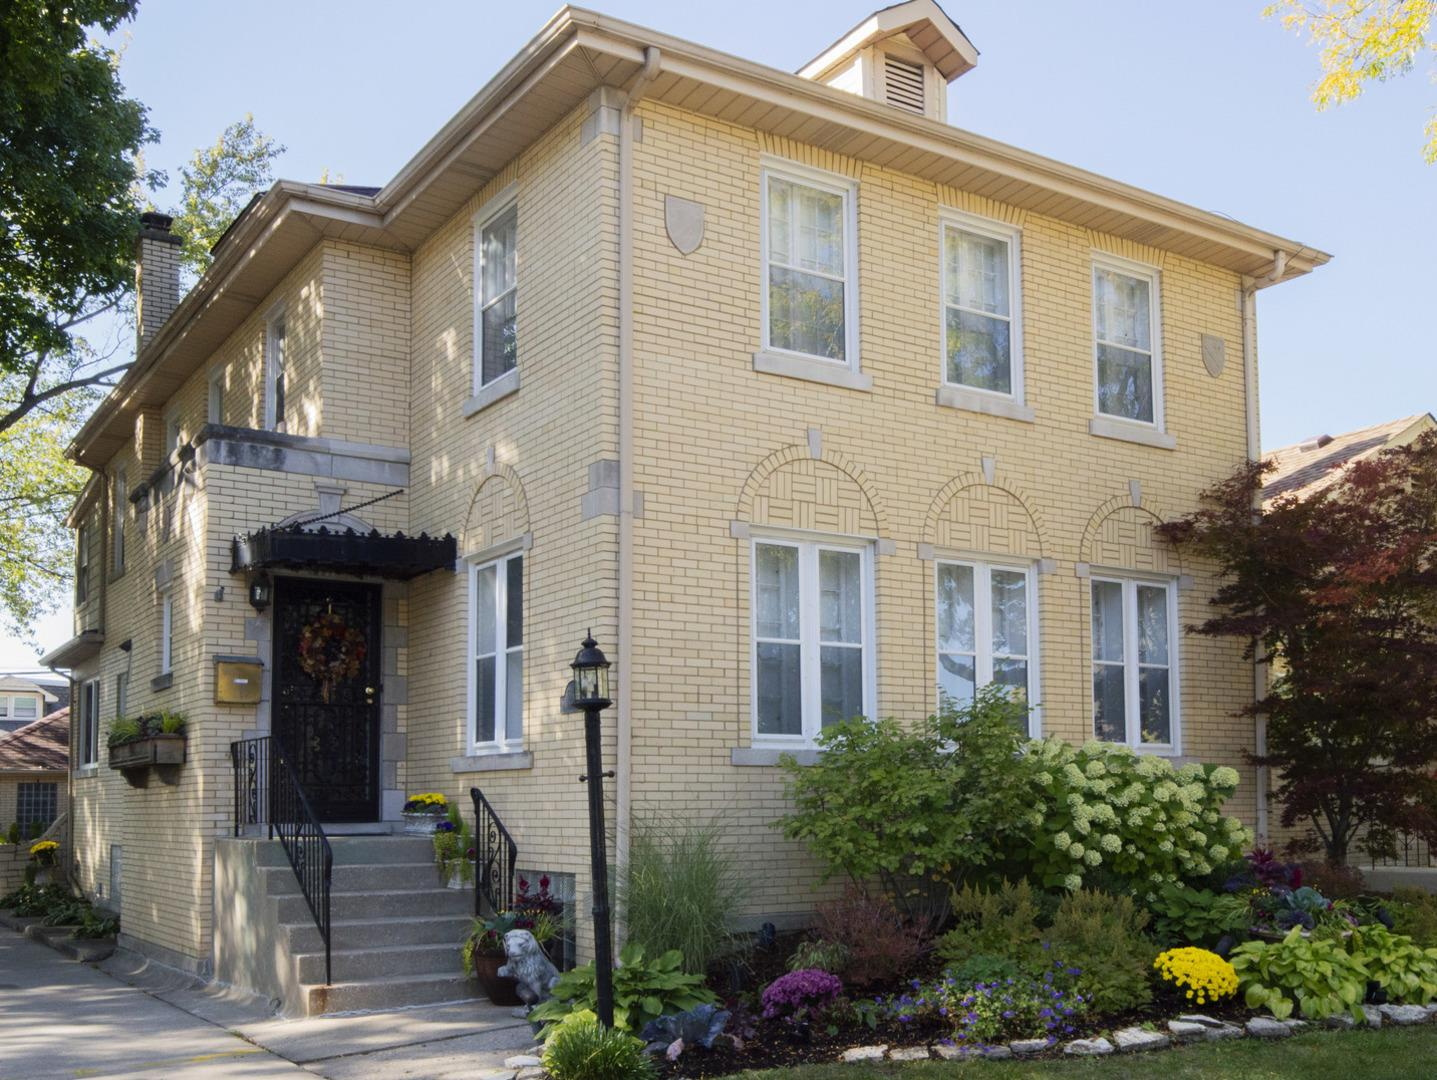 6300 N Melvina Avenue, Chicago, IL 60646 - MLS#: 11061300